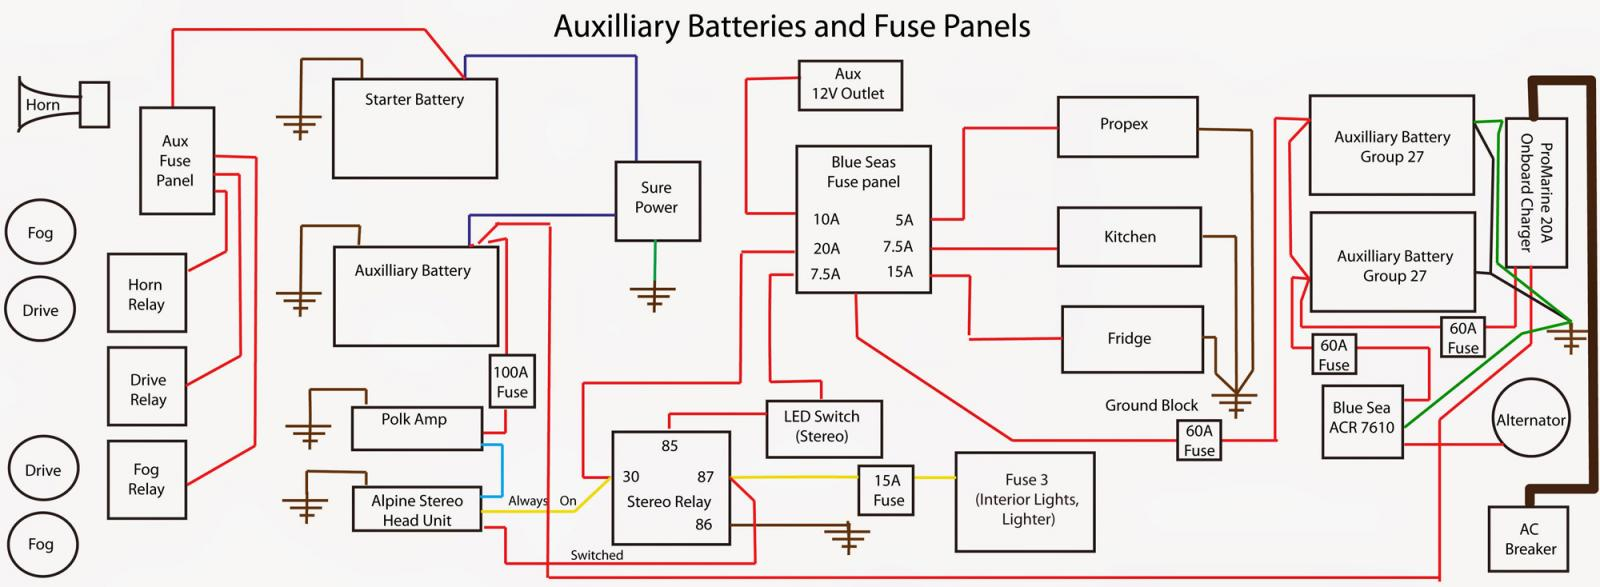 hight resolution of wiring diagram for auxilliary battery bank onboard charger